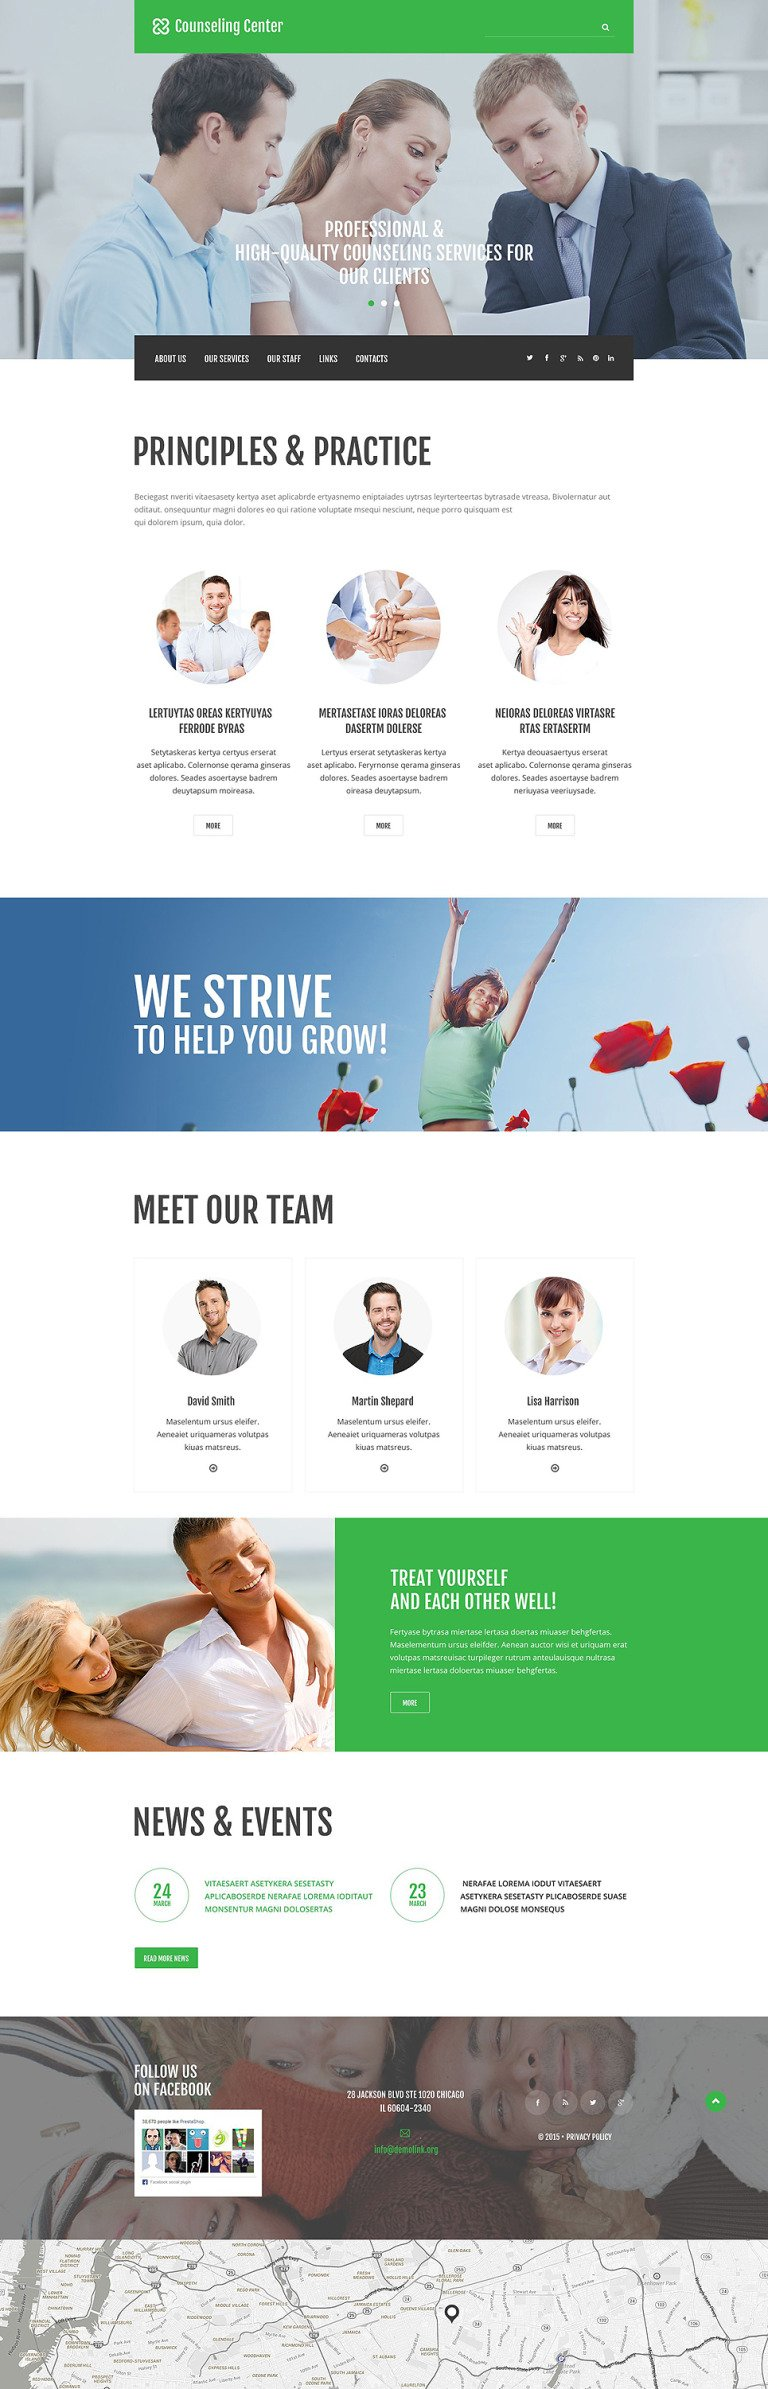 Counseling Center Website Template New Screenshots BIG